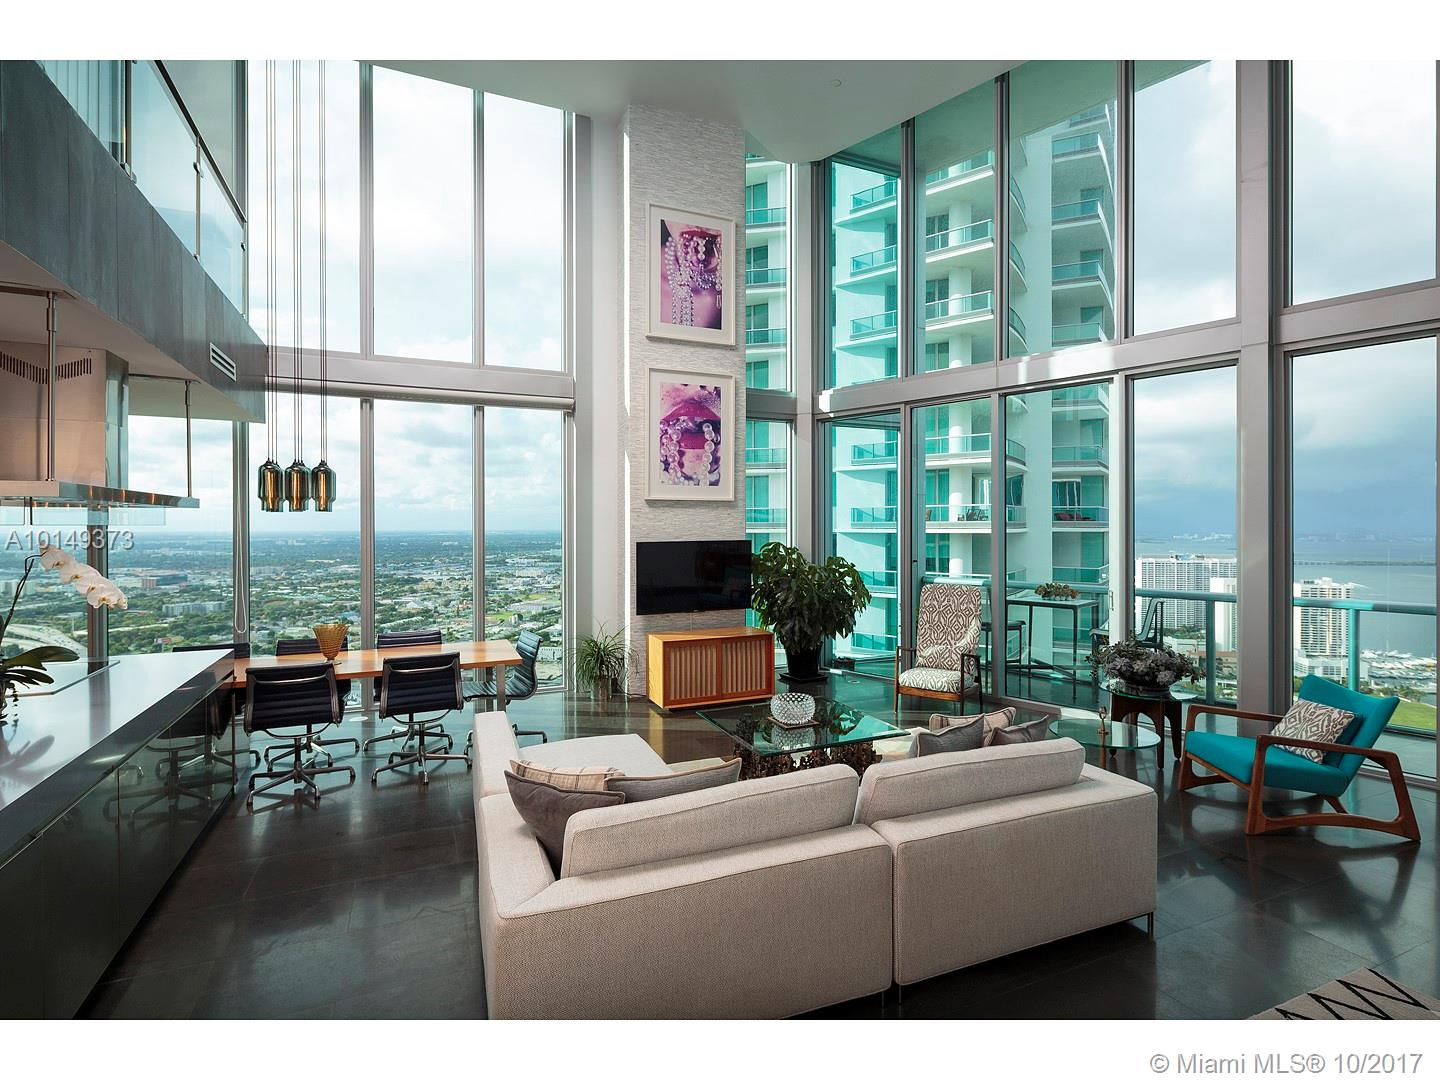 888 Biscayne Blvd #5112, Miami, FL 33132 - MLS A10149373 - Coldwell ...